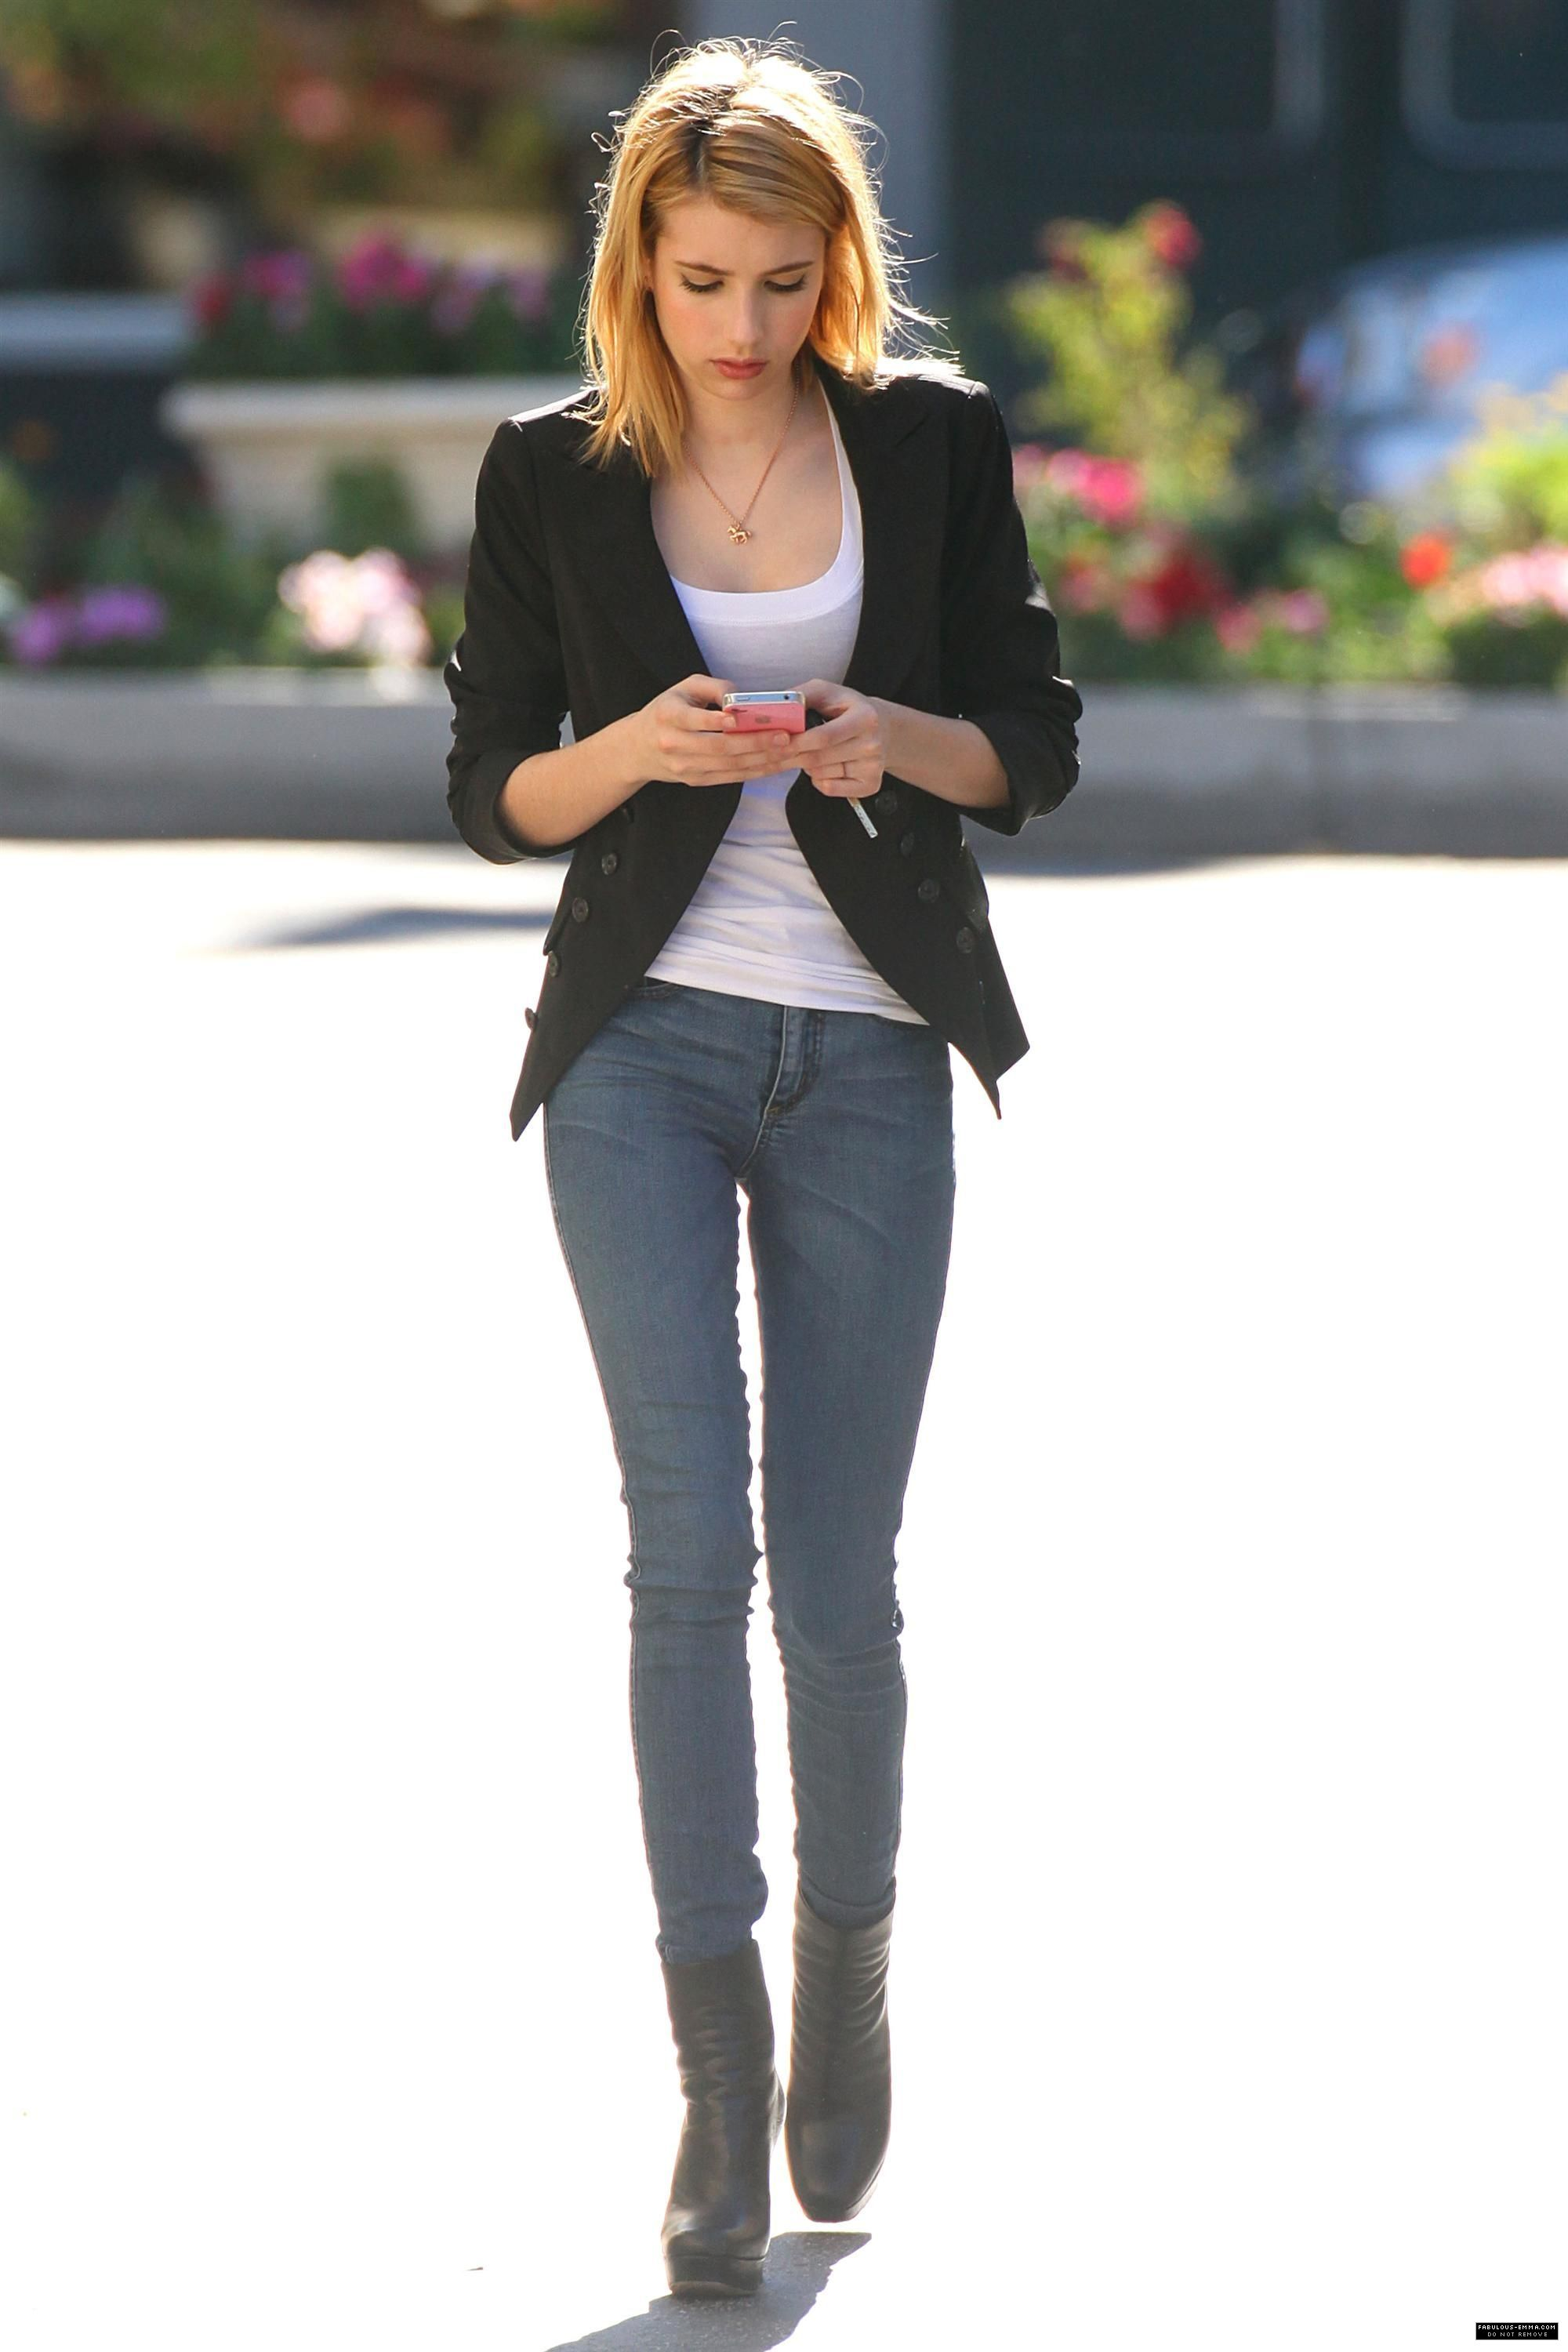 emma-roberts-urban-outfit-leaving-901-salon-west-hollywood